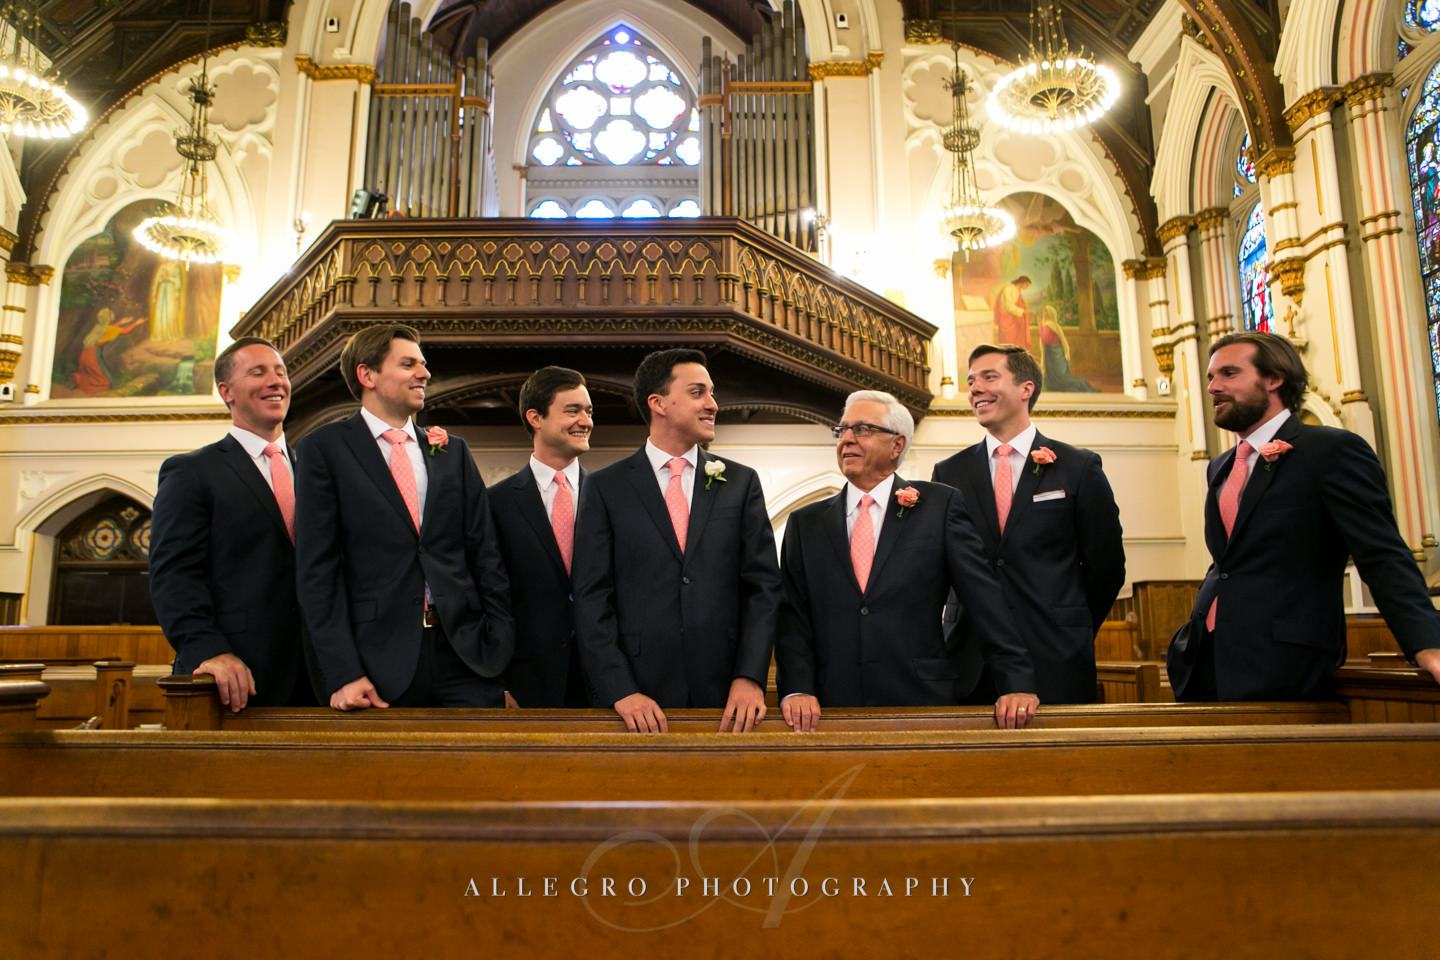 groomsmen portrait at church - photo by Allegro Photography